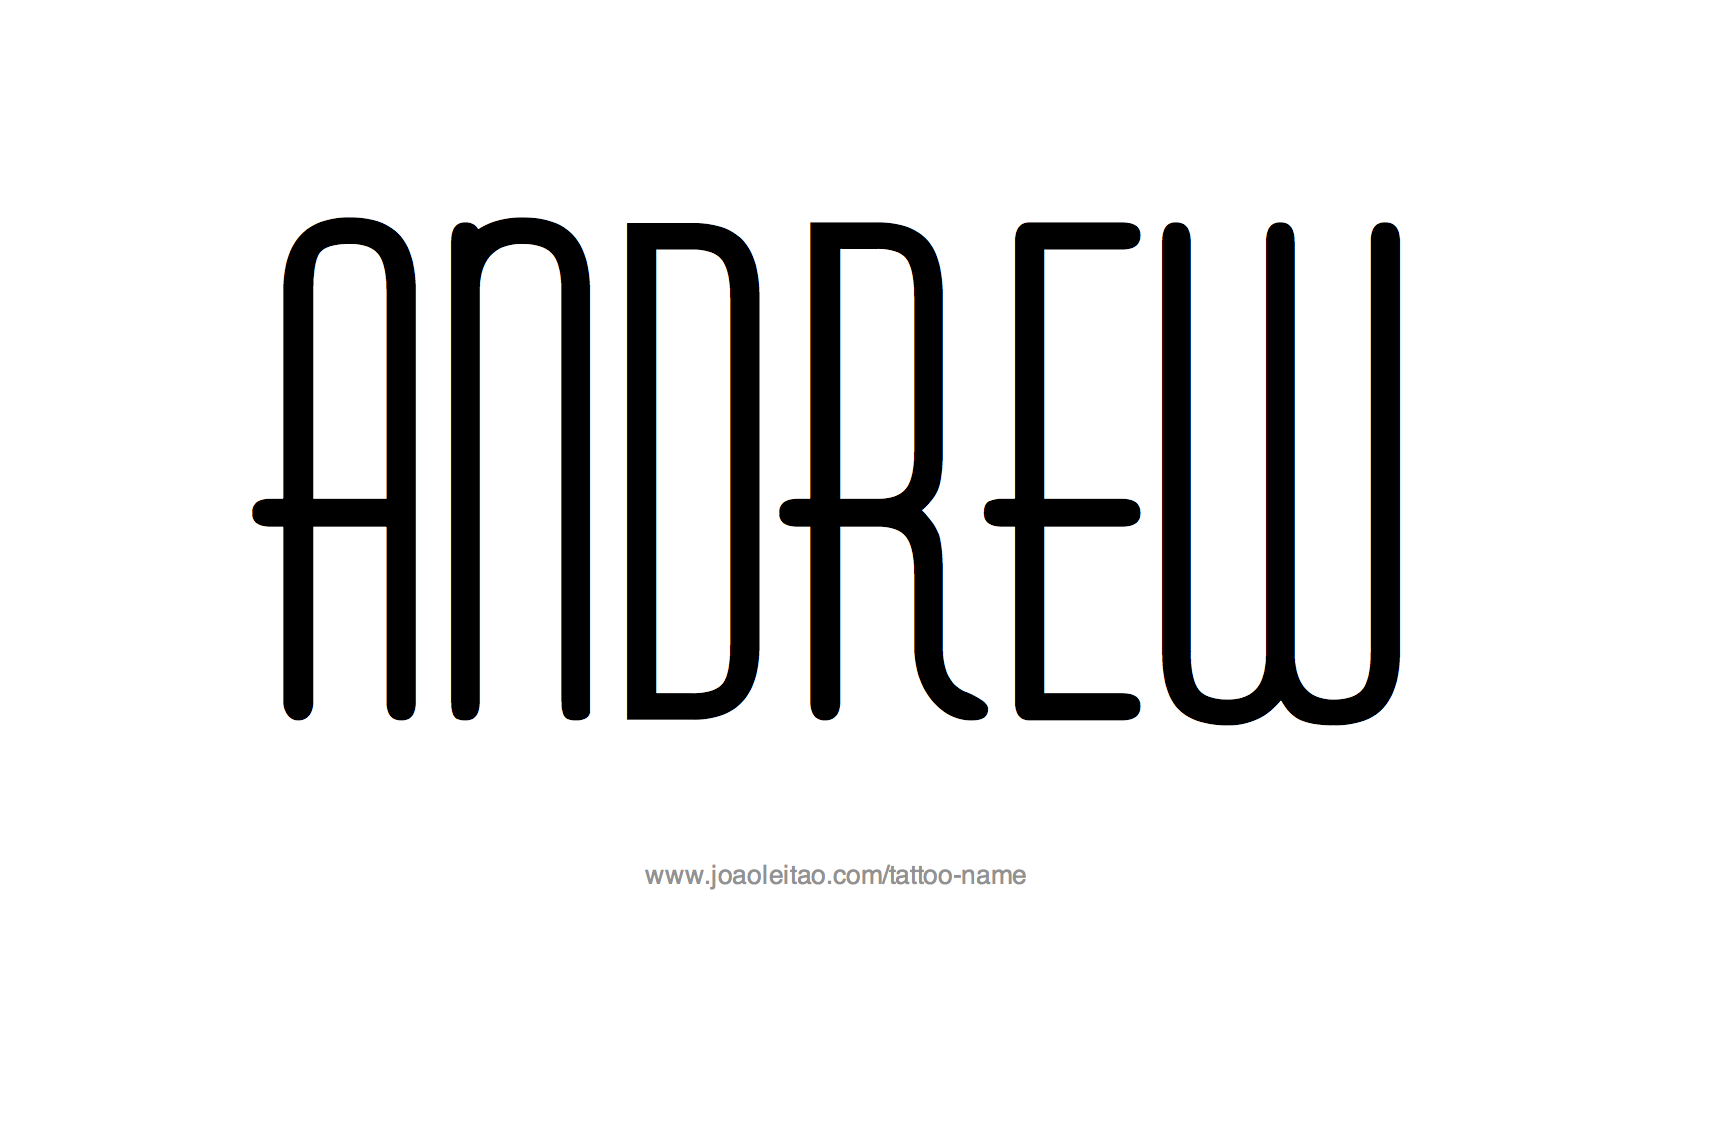 Tattoo Design Name Andrew